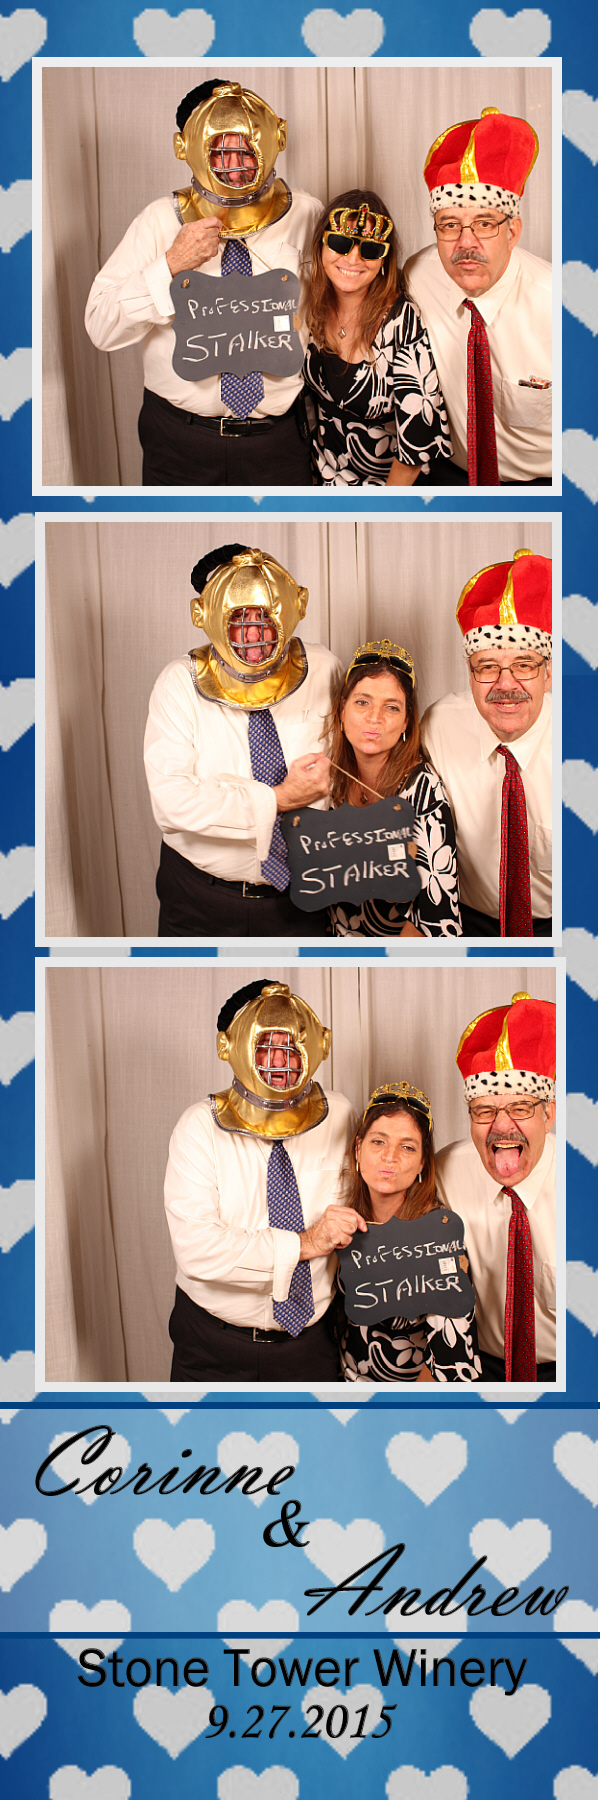 Guest House Events Photo Booth C&A (34).jpg